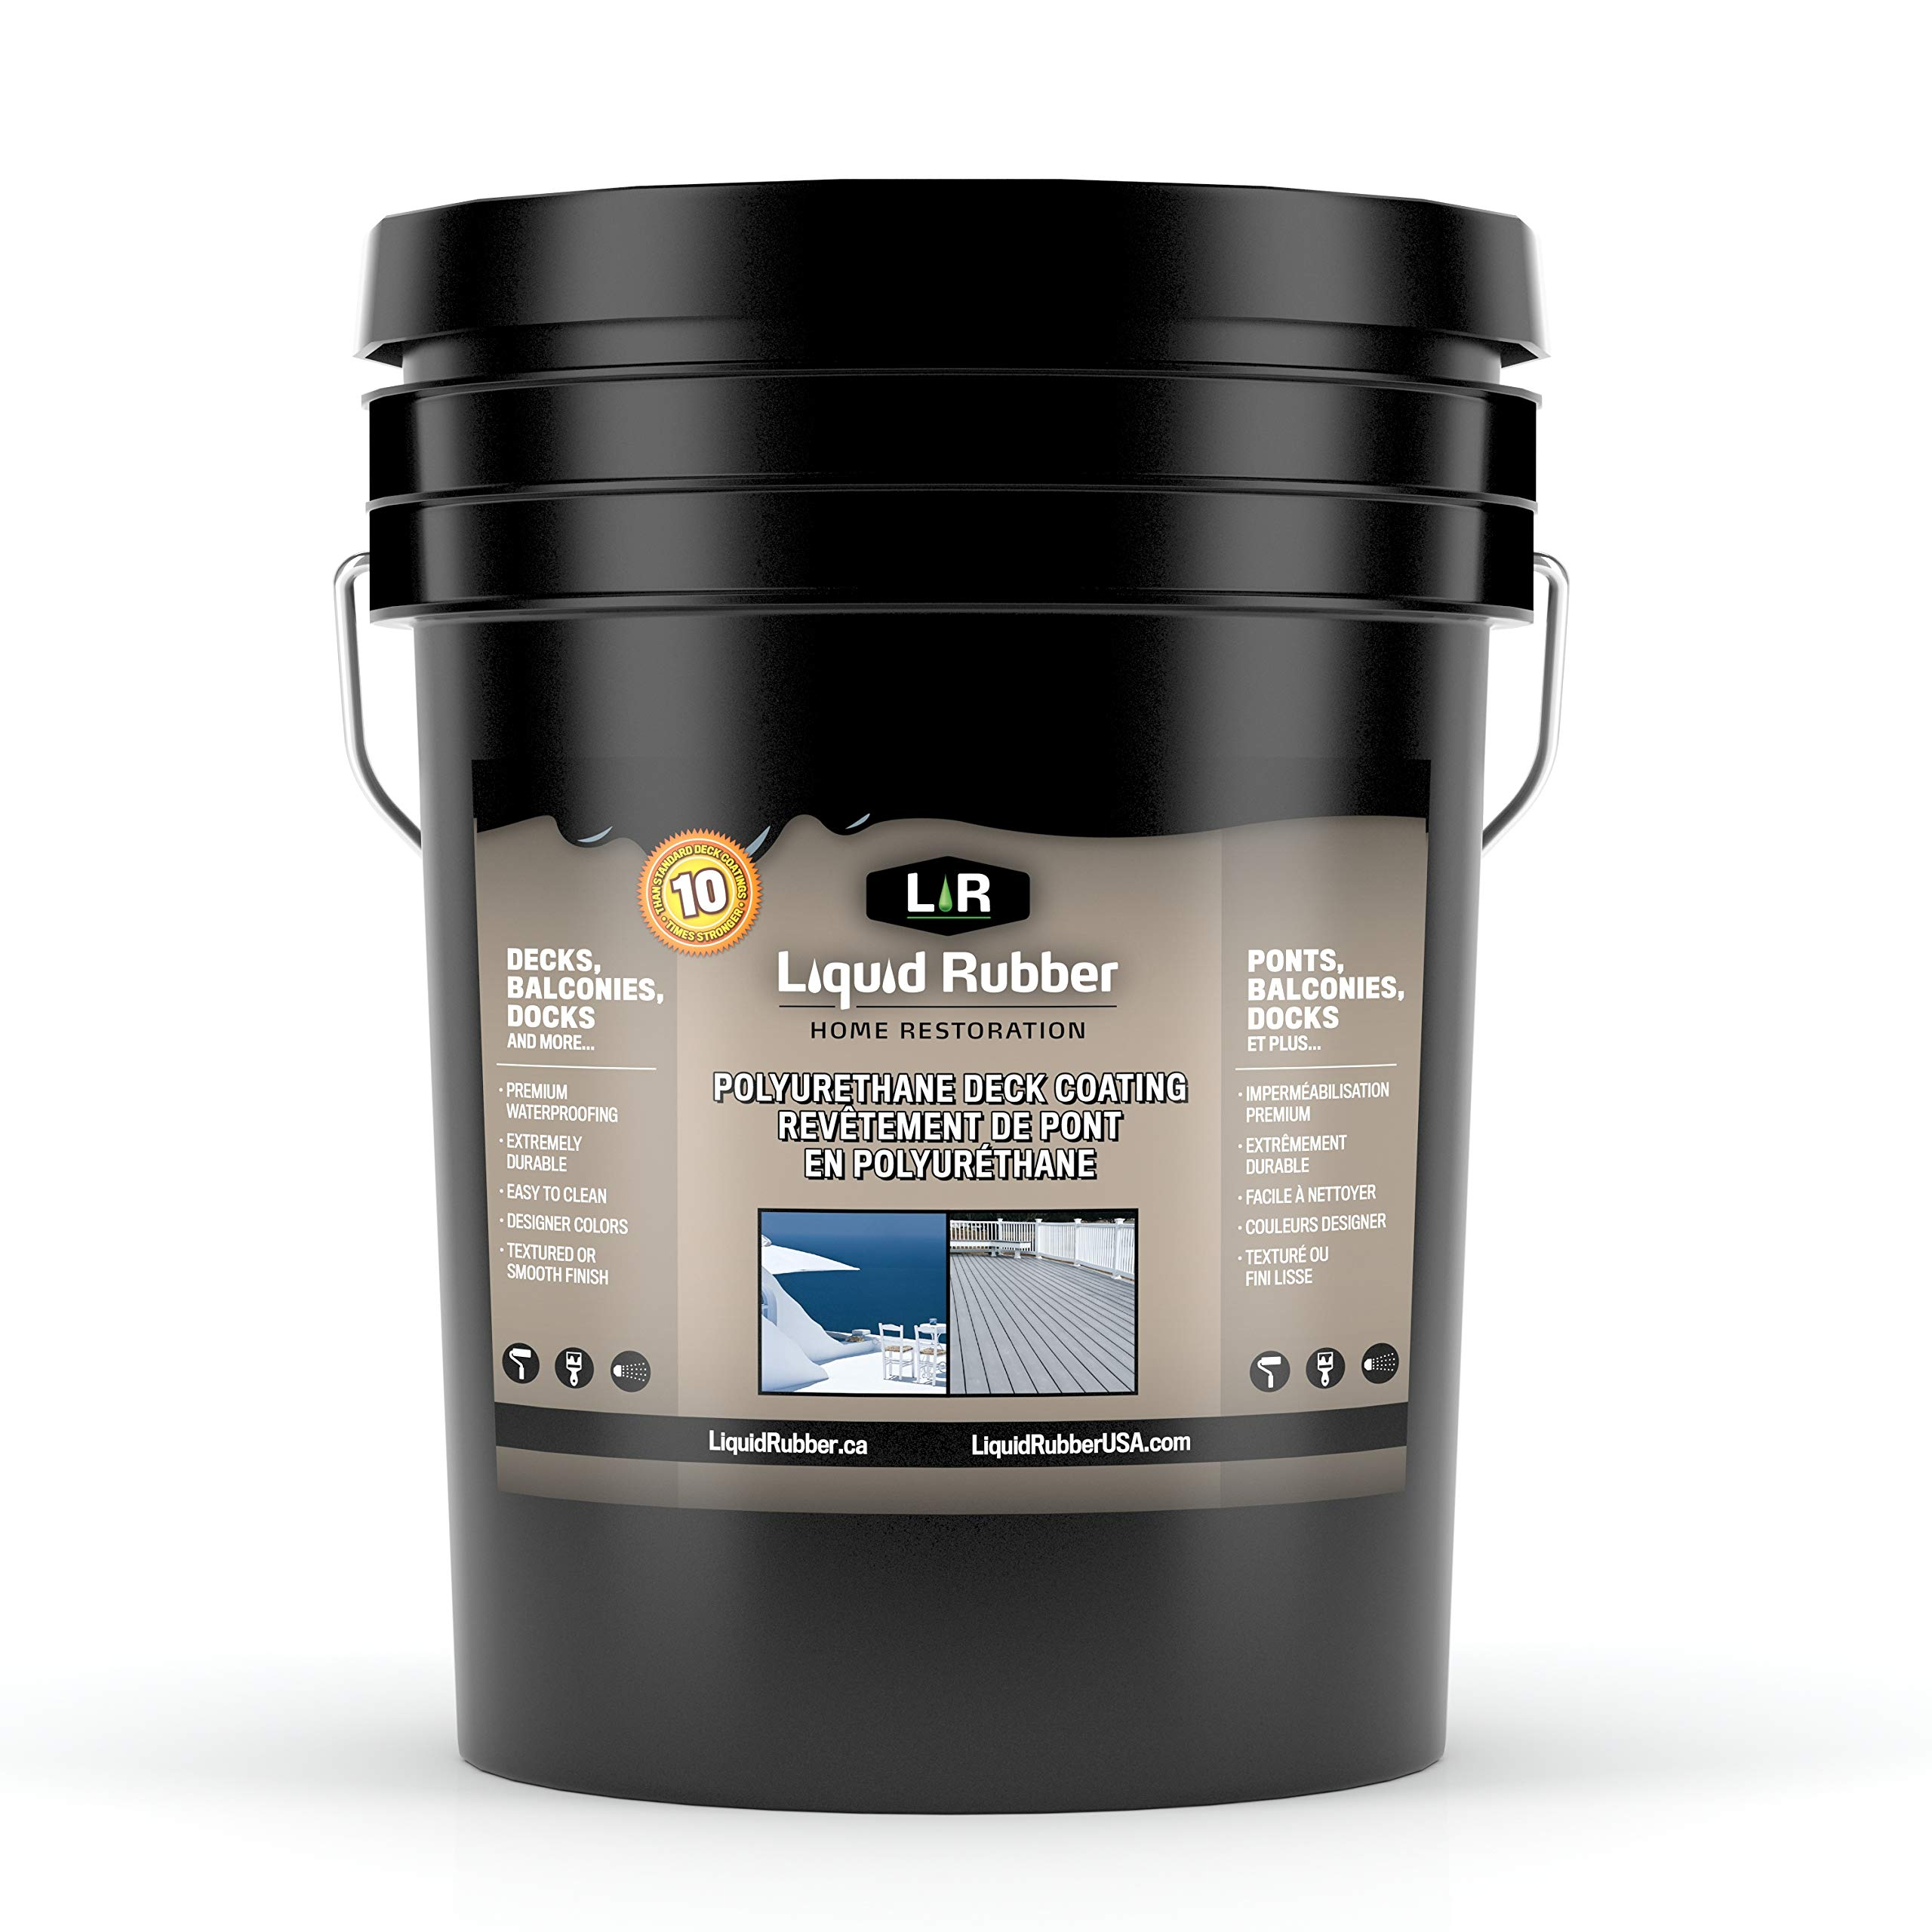 Liquid Rubber Textured Polyurethane Deck and Dock Coating/Sealant - Easy to Apply | UV Resistant | Indoor/Outdoor Use | Stone Grey | 5 Gallon